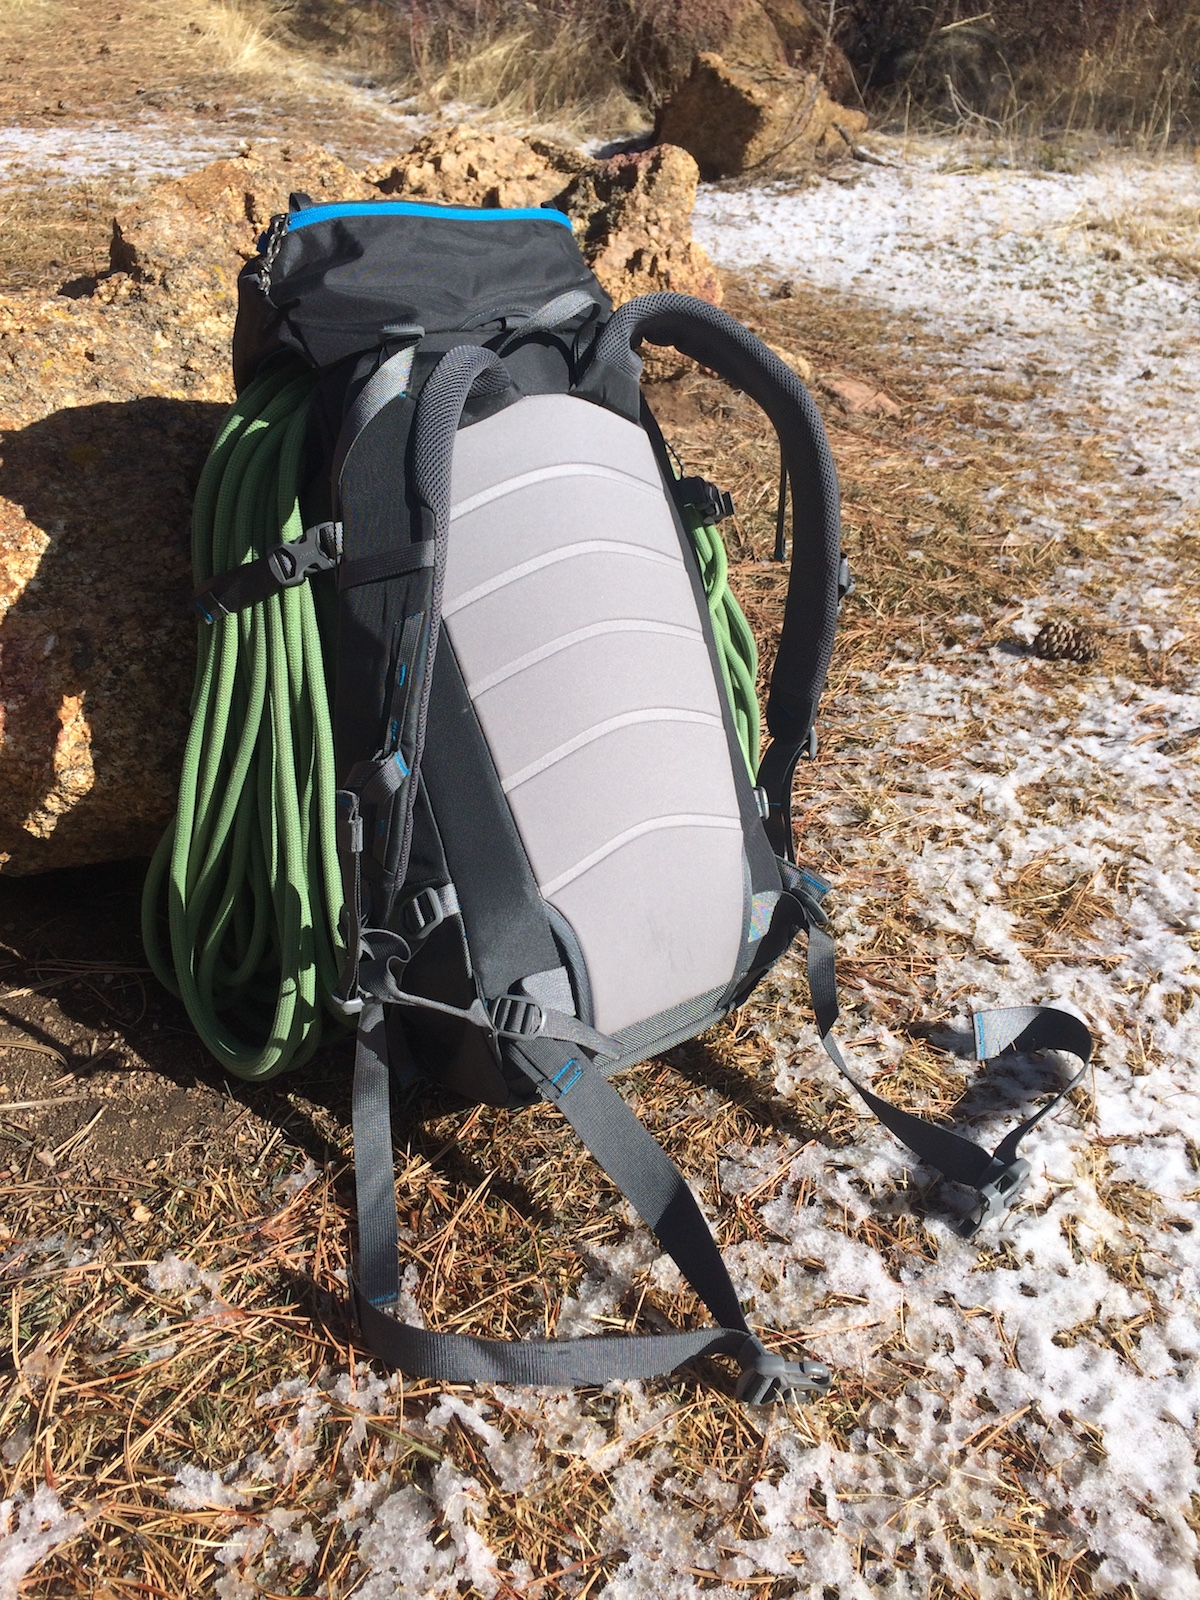 The Warthog 40L Pack, showing the unpadded hip belt, the simple back panel, and the non-expandable, fixed lid. [Photo] Mike Lewis